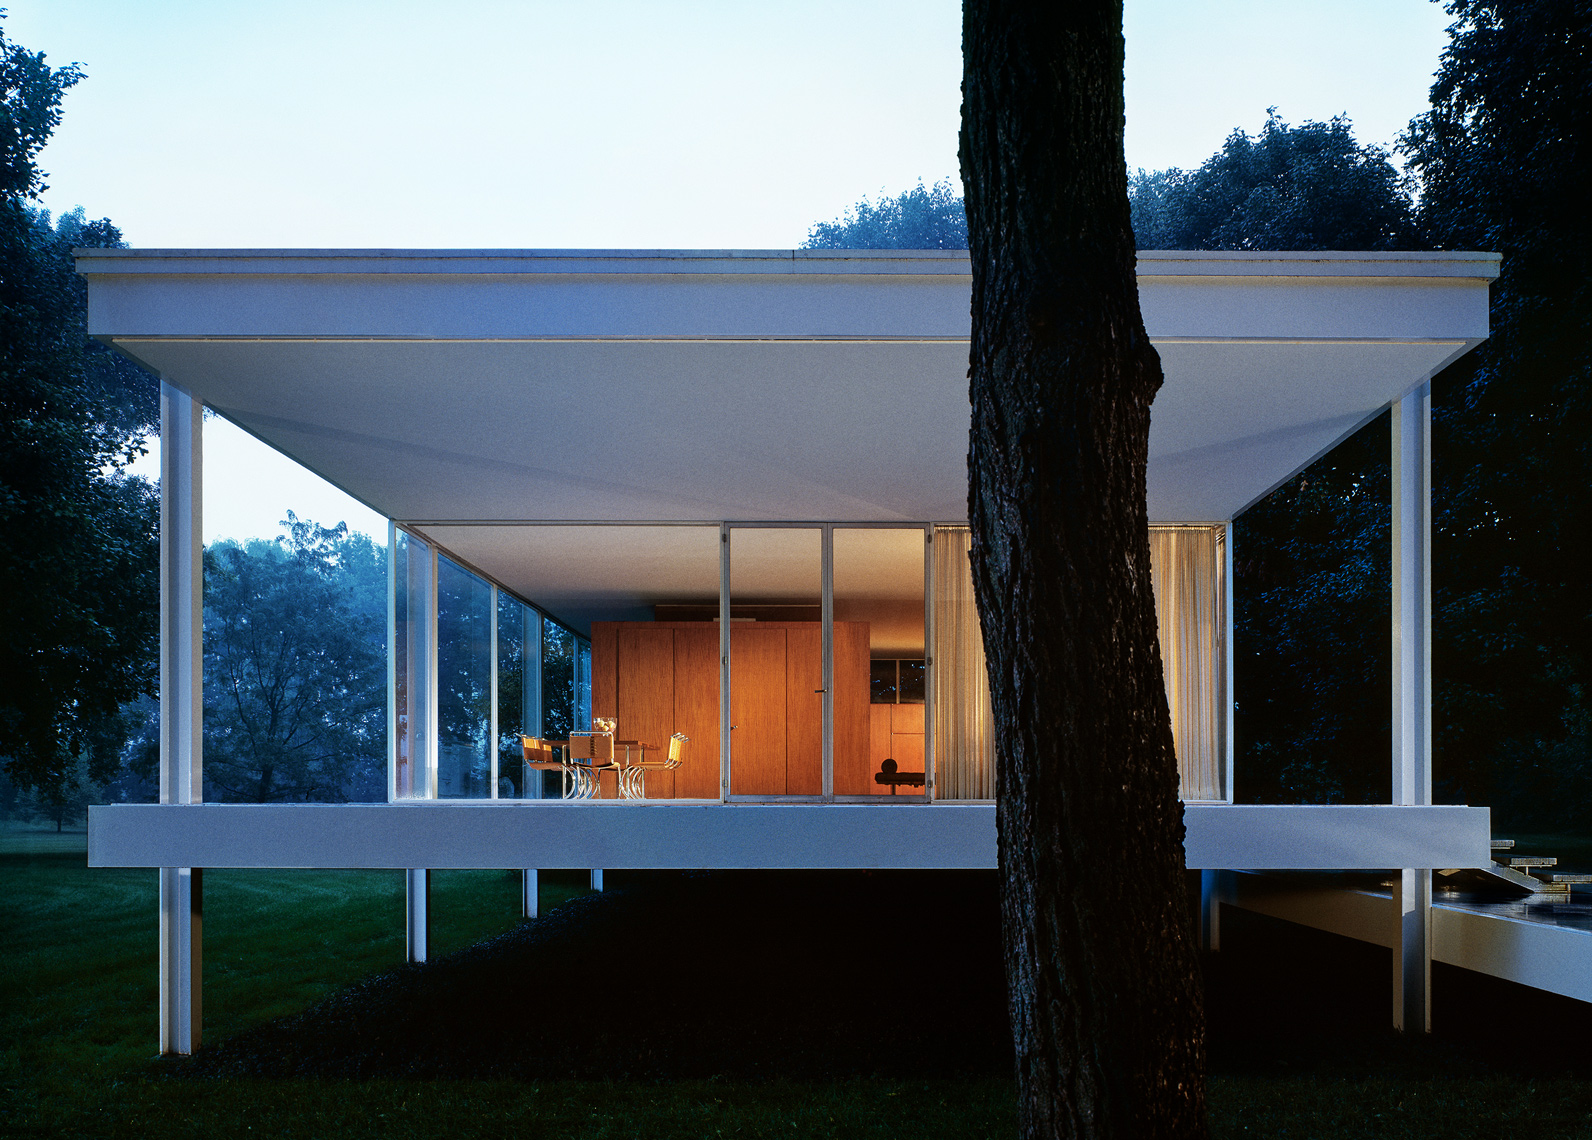 Farnsworth House, Mies van der Rohe, Modernist